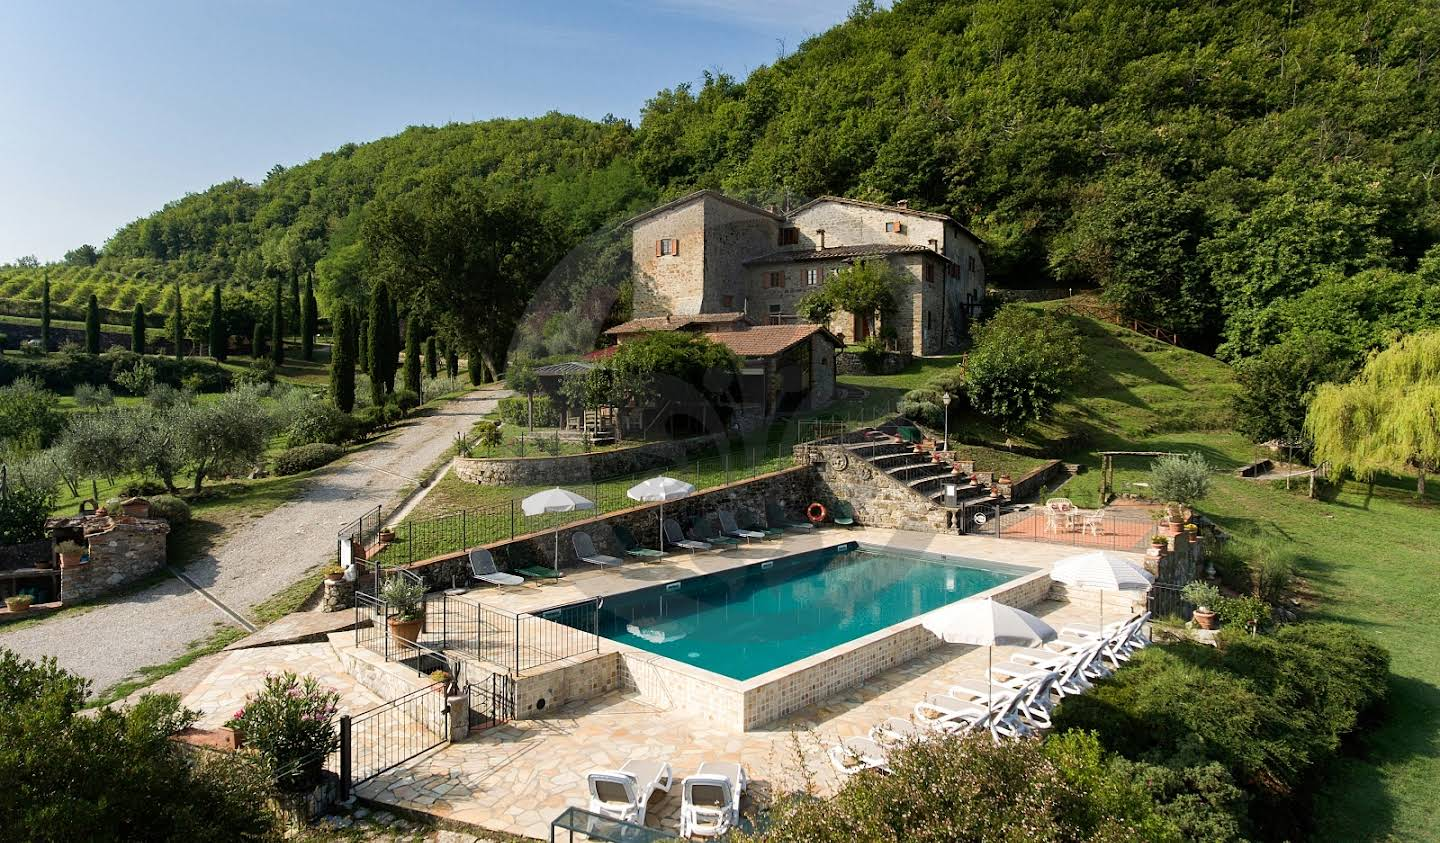 Farm house with garden and pool Greve in Chianti